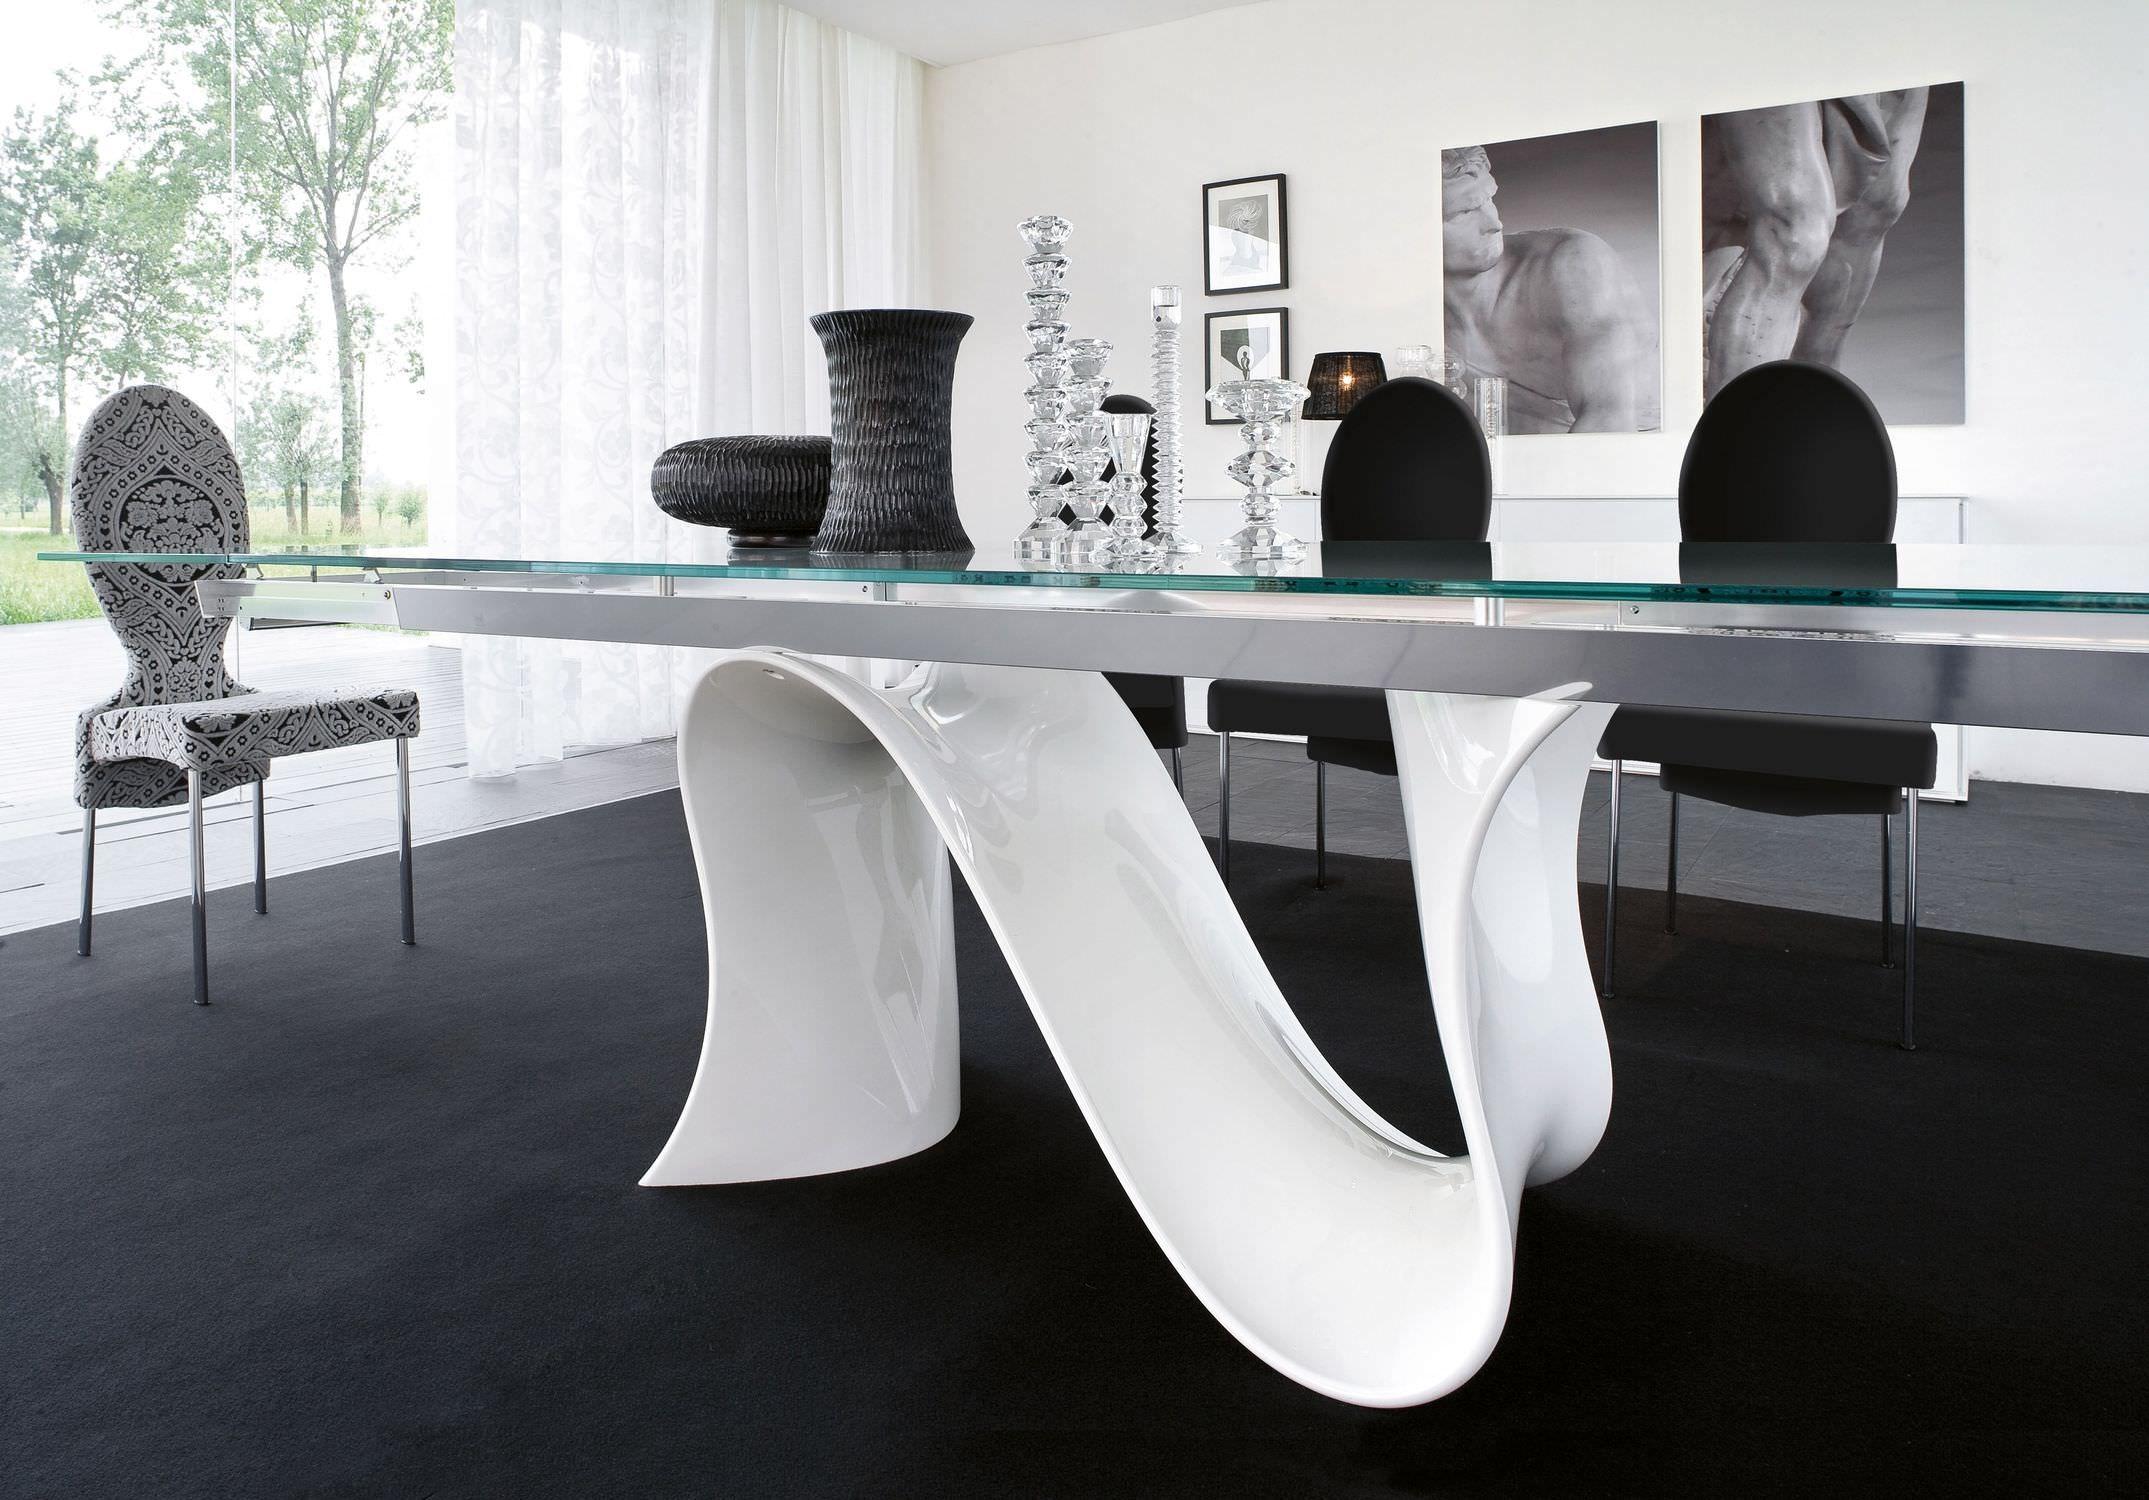 Bon Marvellous Glass Top Dining Table Design Ideas By Long Square Glass Table  With N Curving Shape